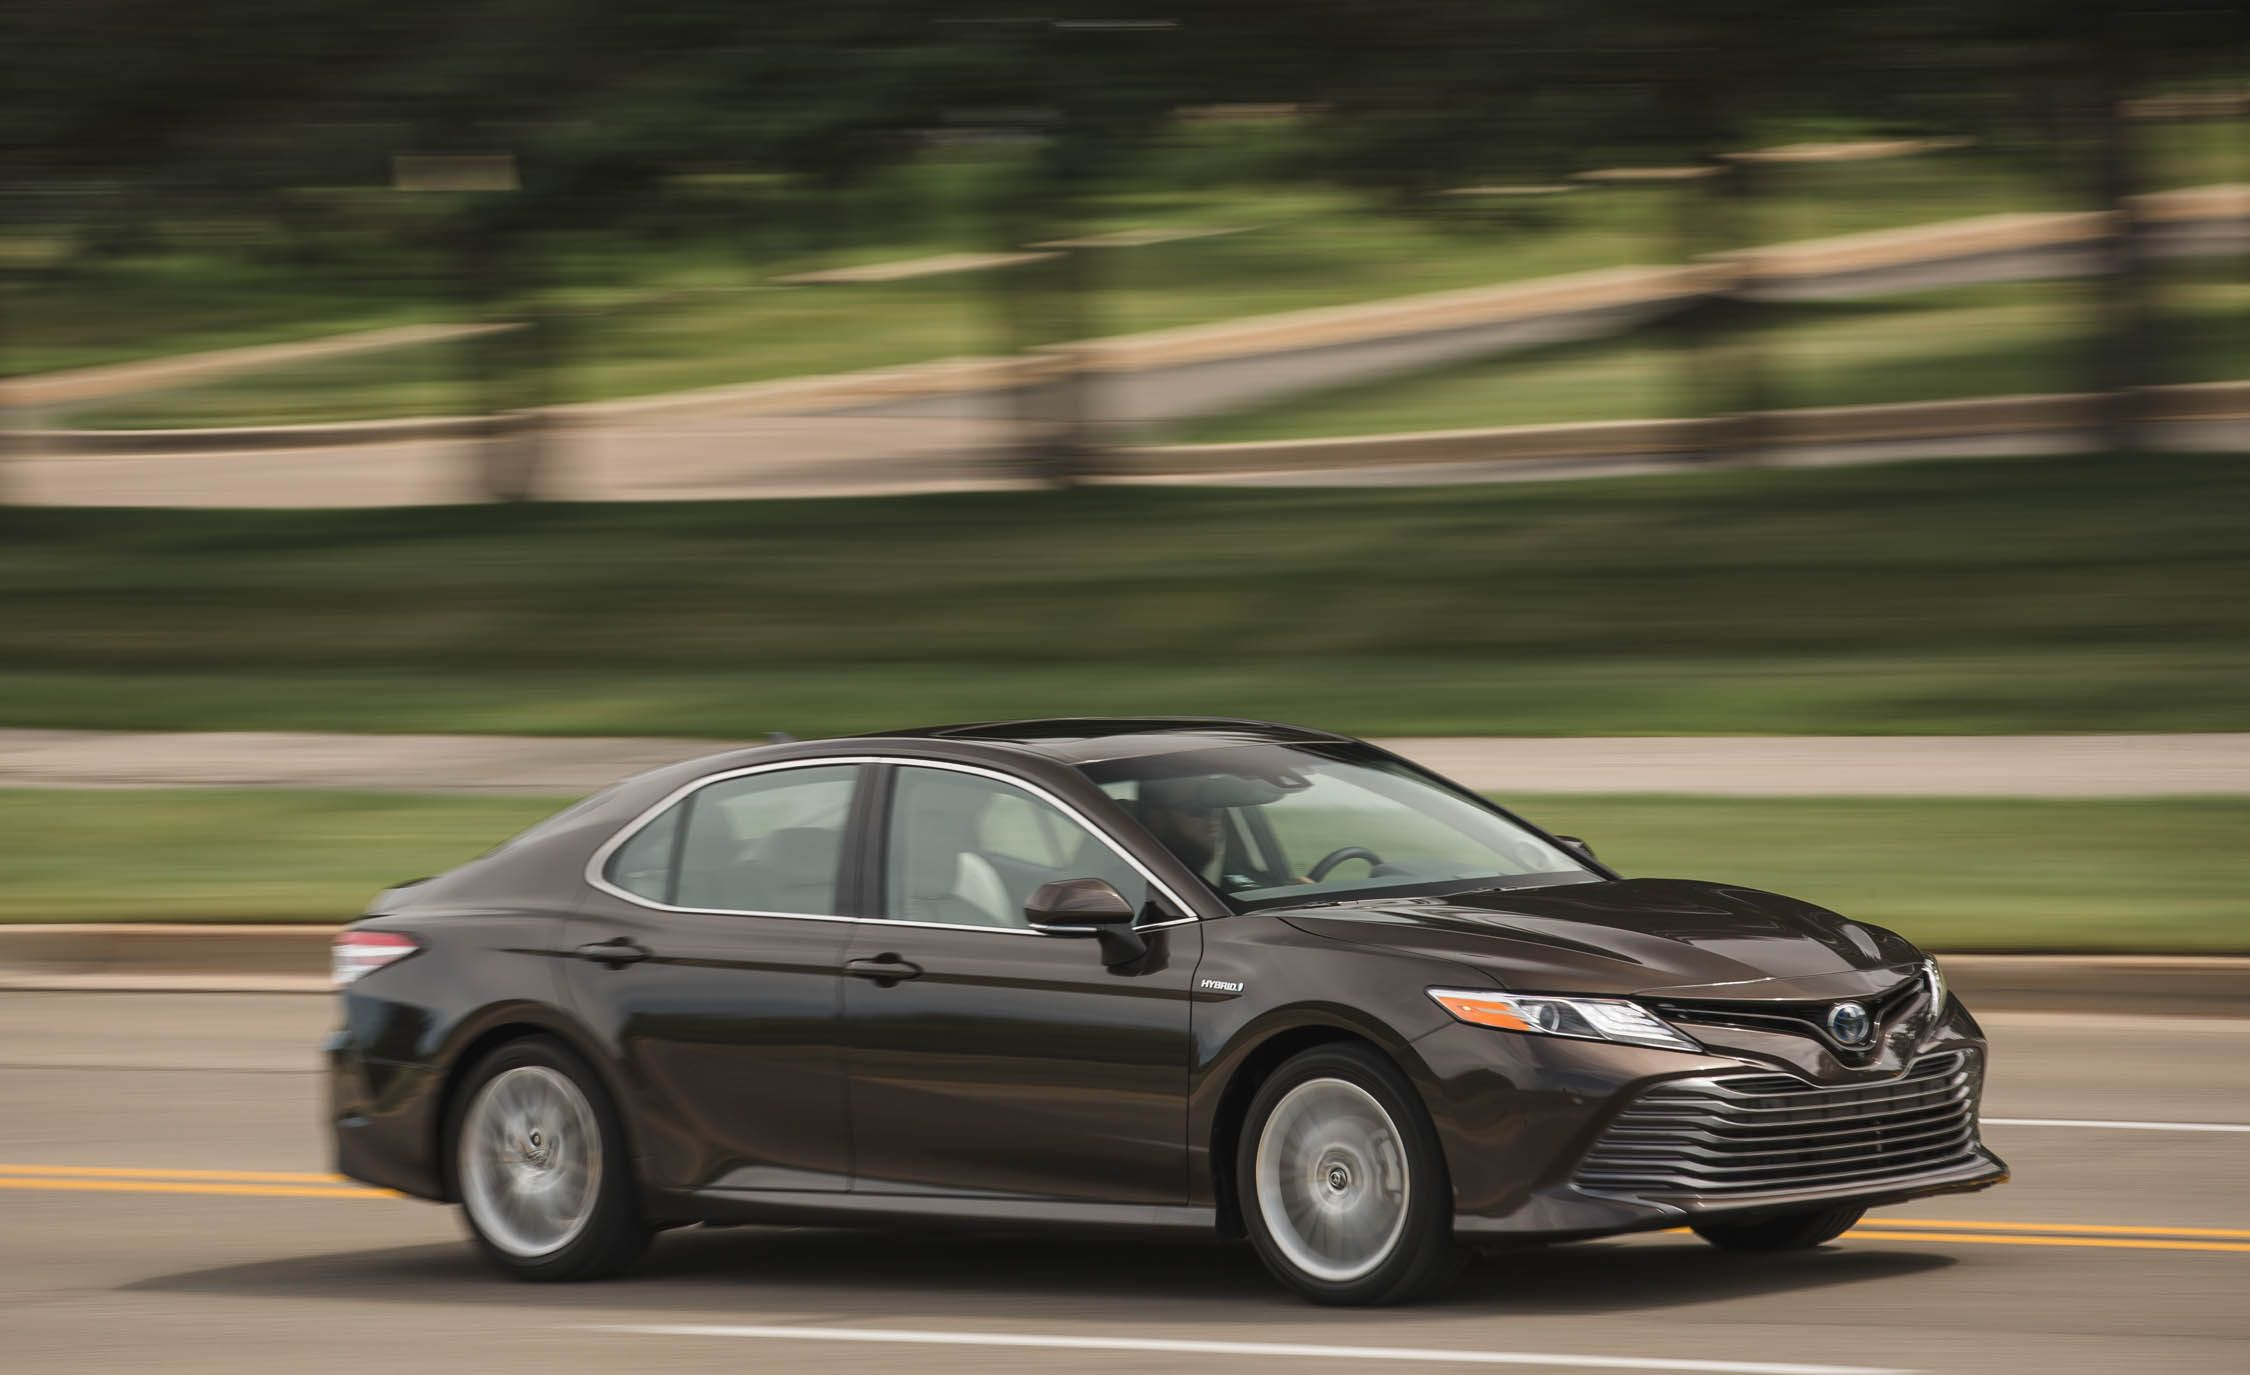 2018 Toyota Camry Xle Hybrid Test Review Car And Driver 91 2 0 Engine Diagram